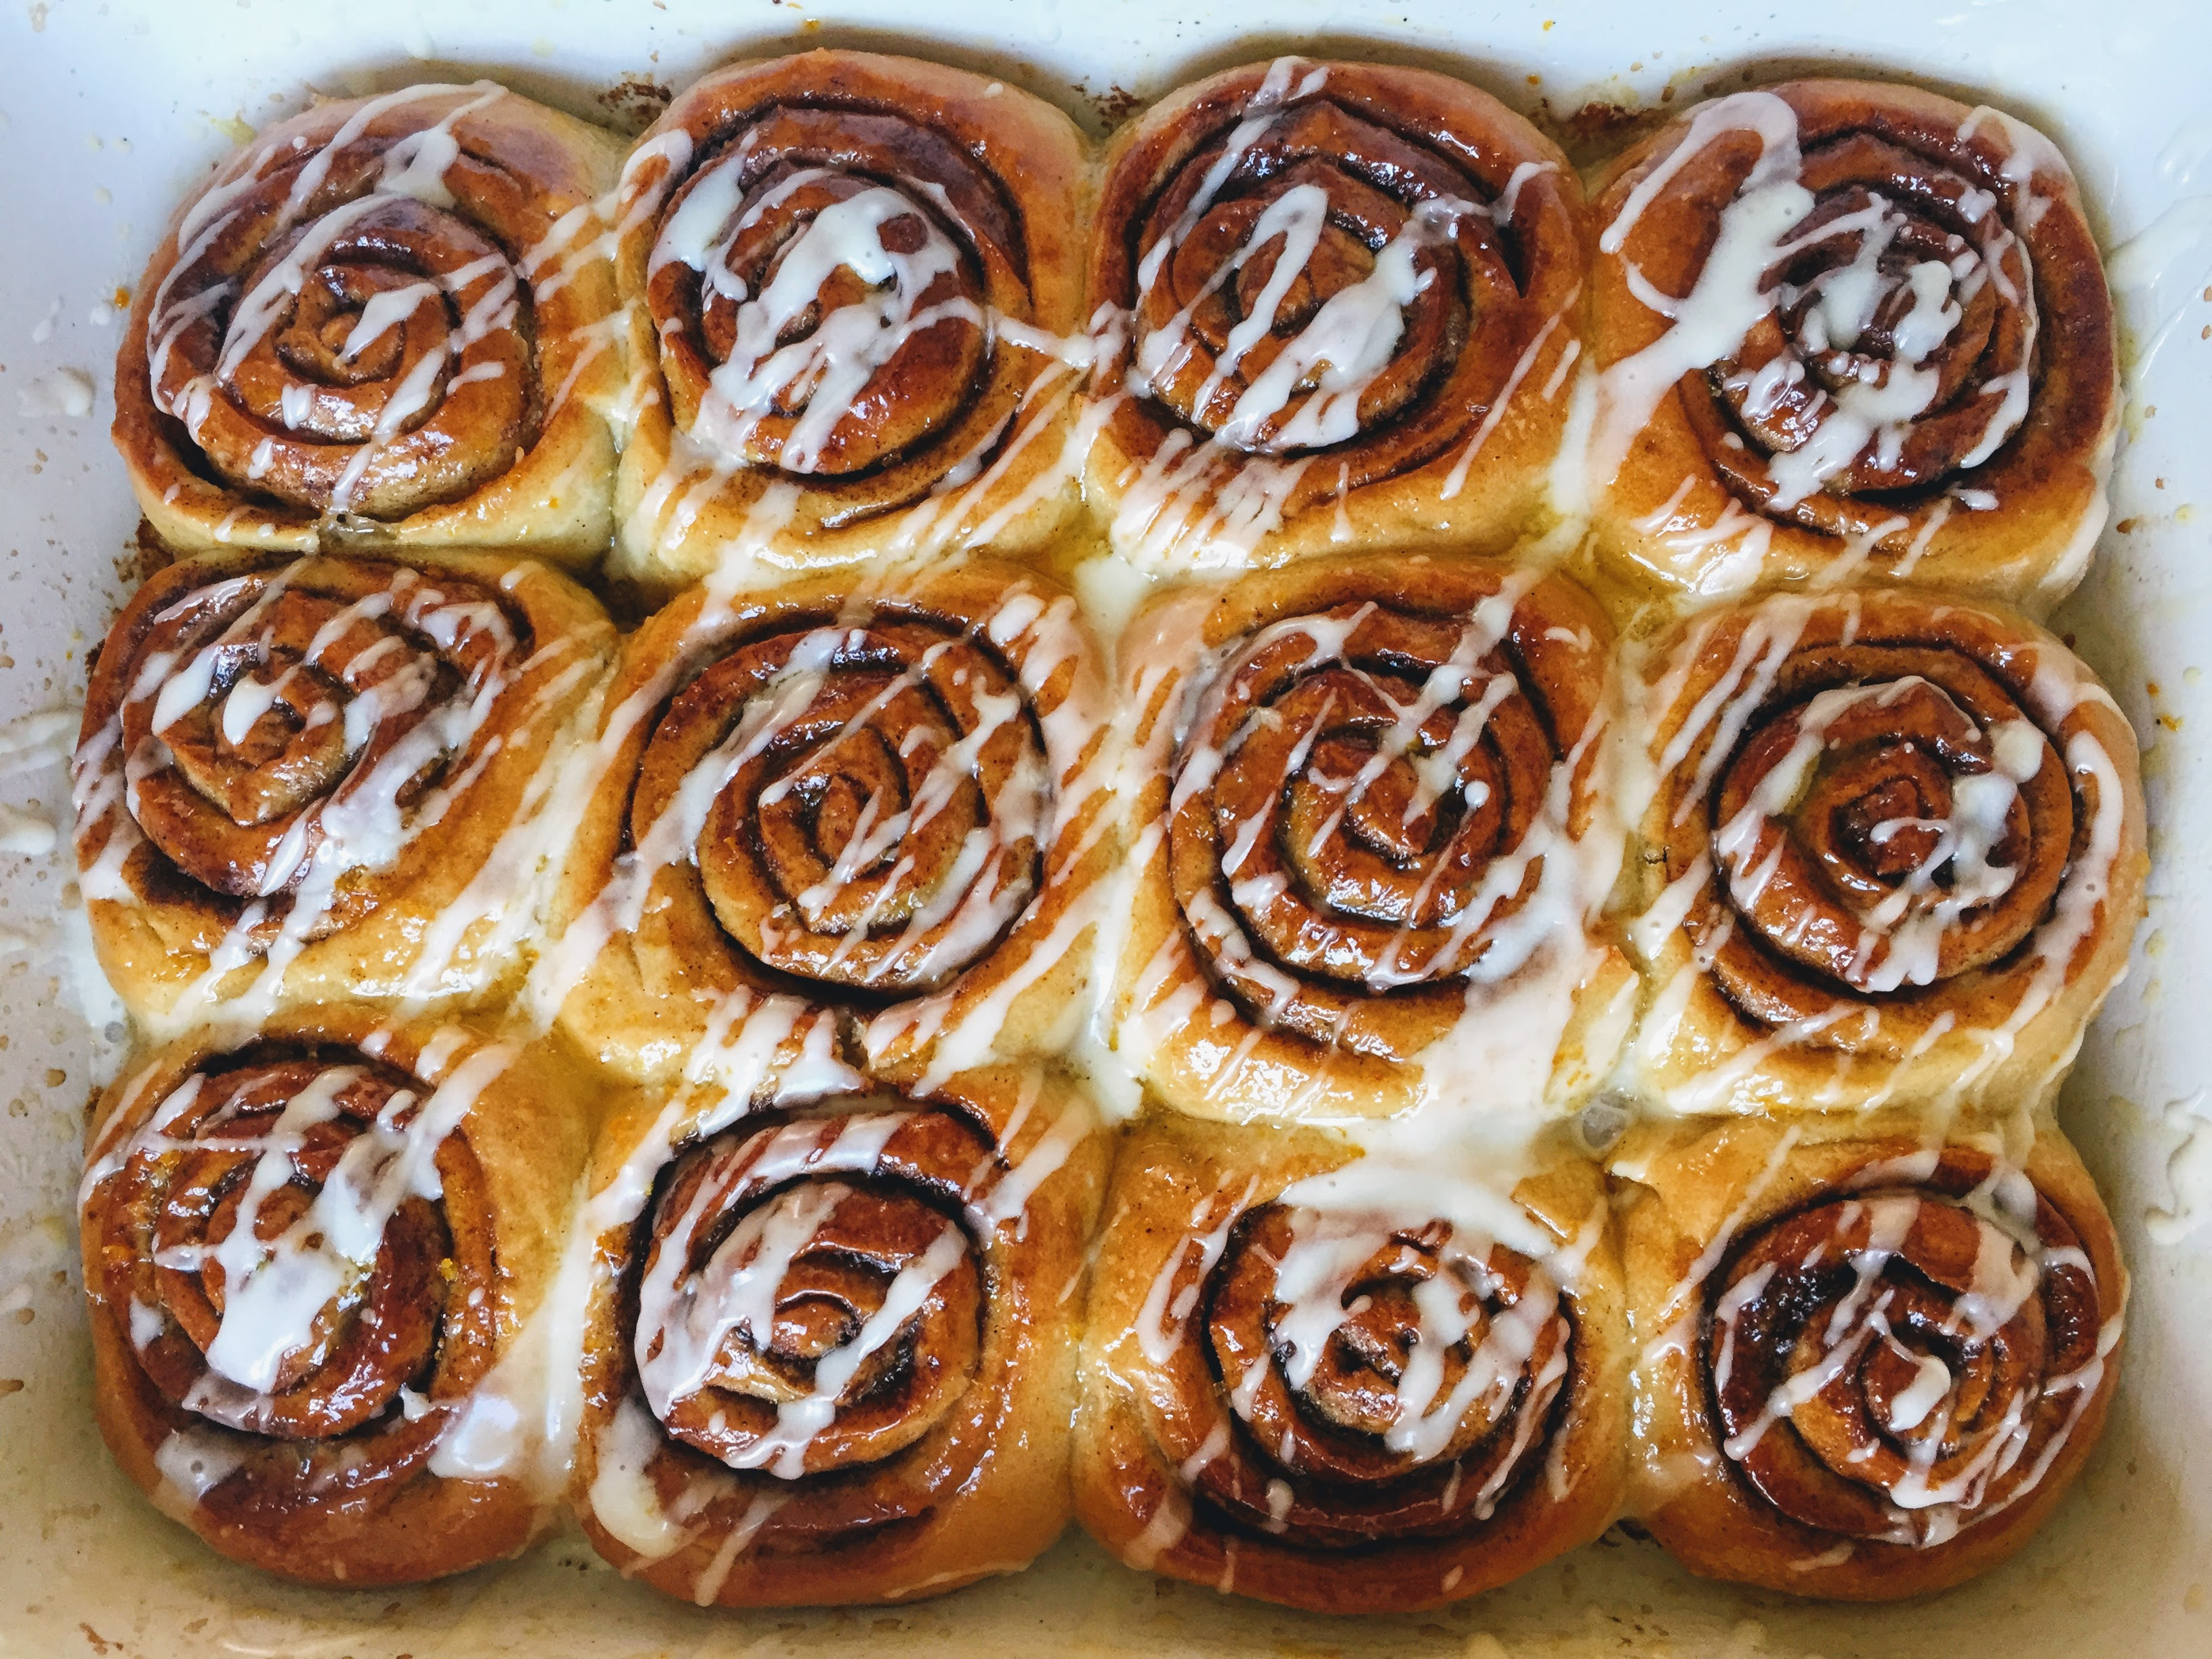 The cinnamon rolls, still in their dish. The rolls are merged together and have a distinct swirl of sweet cinnamon mixture throughout. The rolls are shiny and drizzled with stripes of white icing.